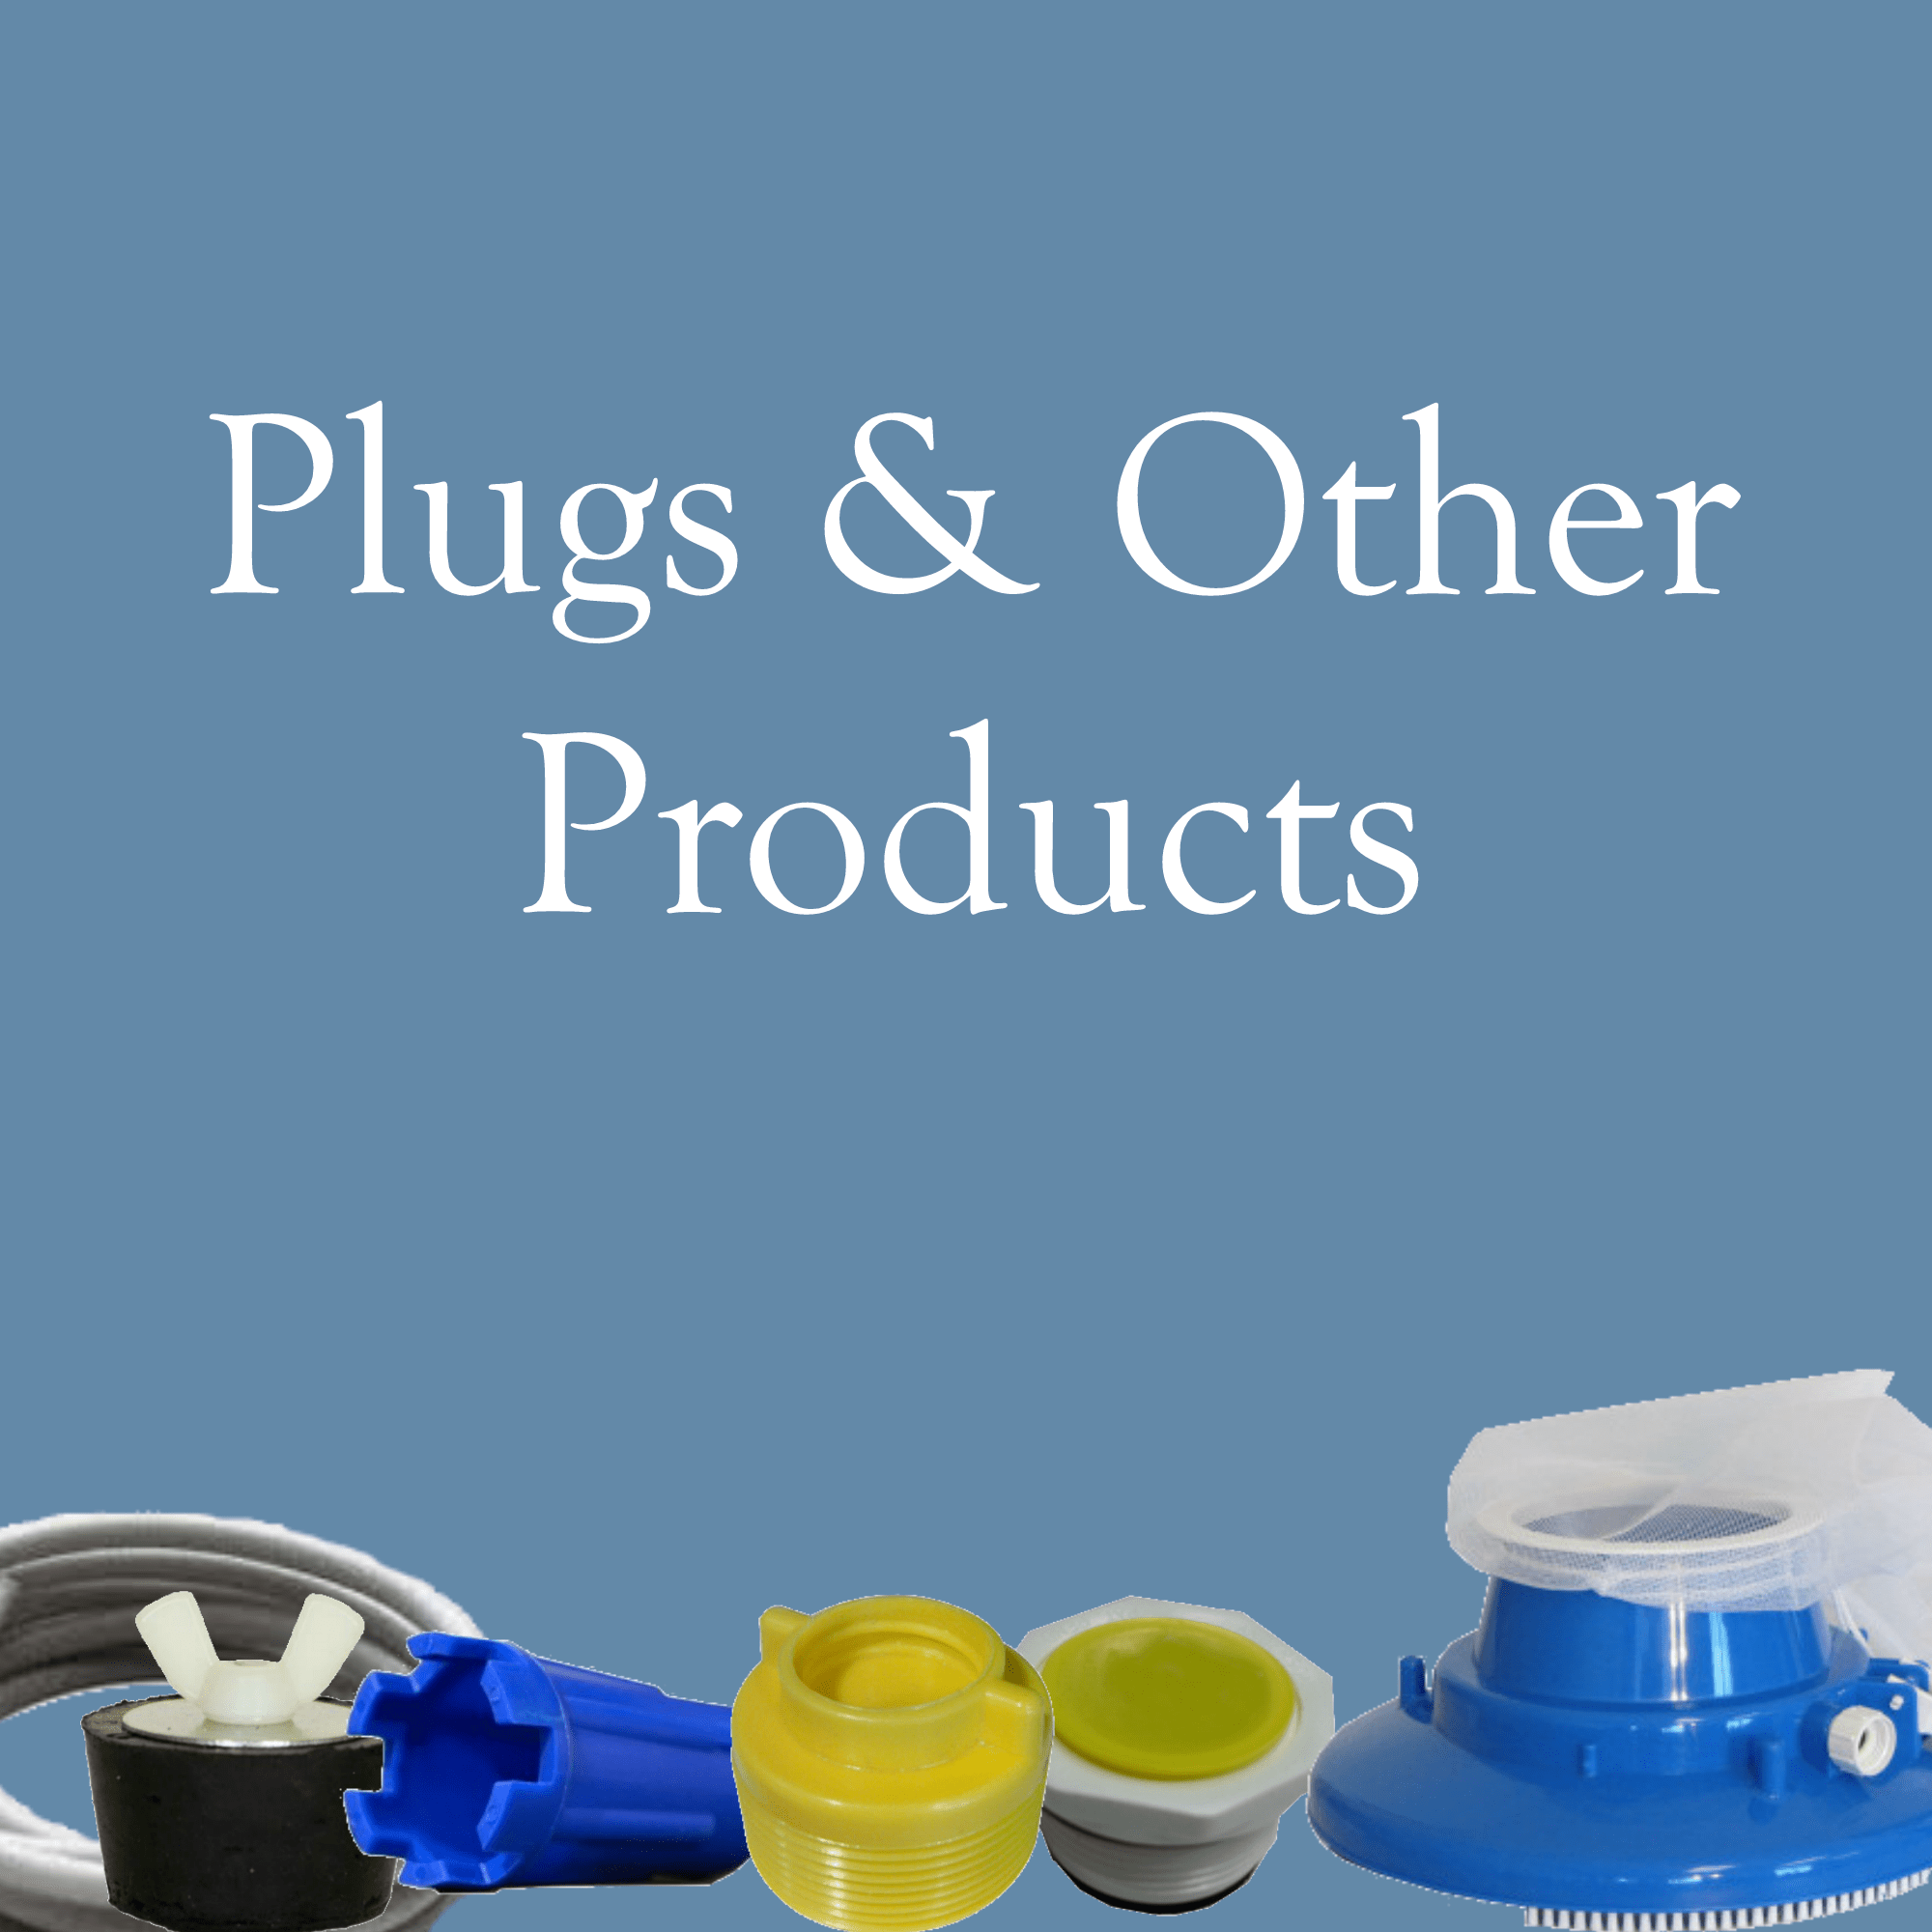 Plugs and Other Products